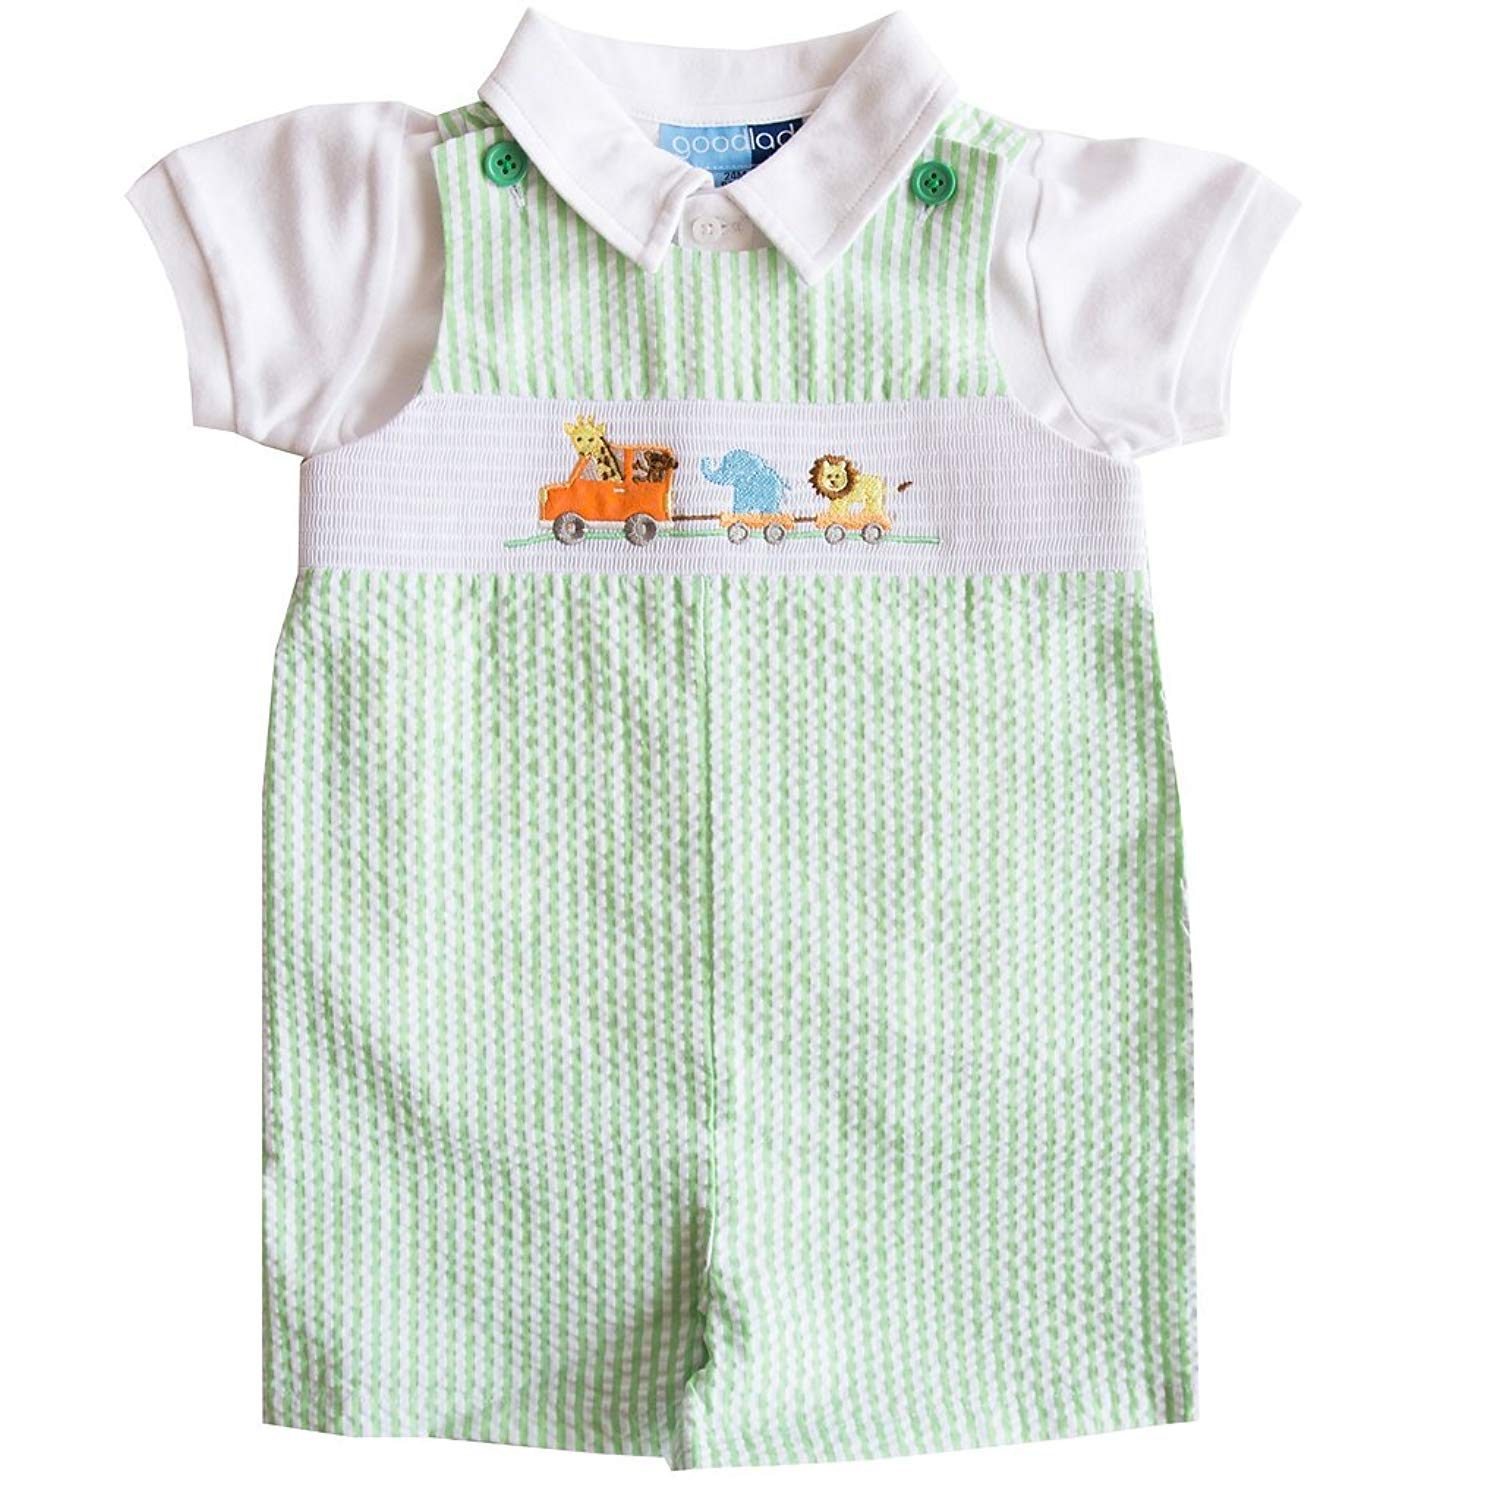 729948493a68 Get Quotations · Good Lad Newborn Infant Boys Green Seersucker Smocked  Shortall Set with Animal Appliques